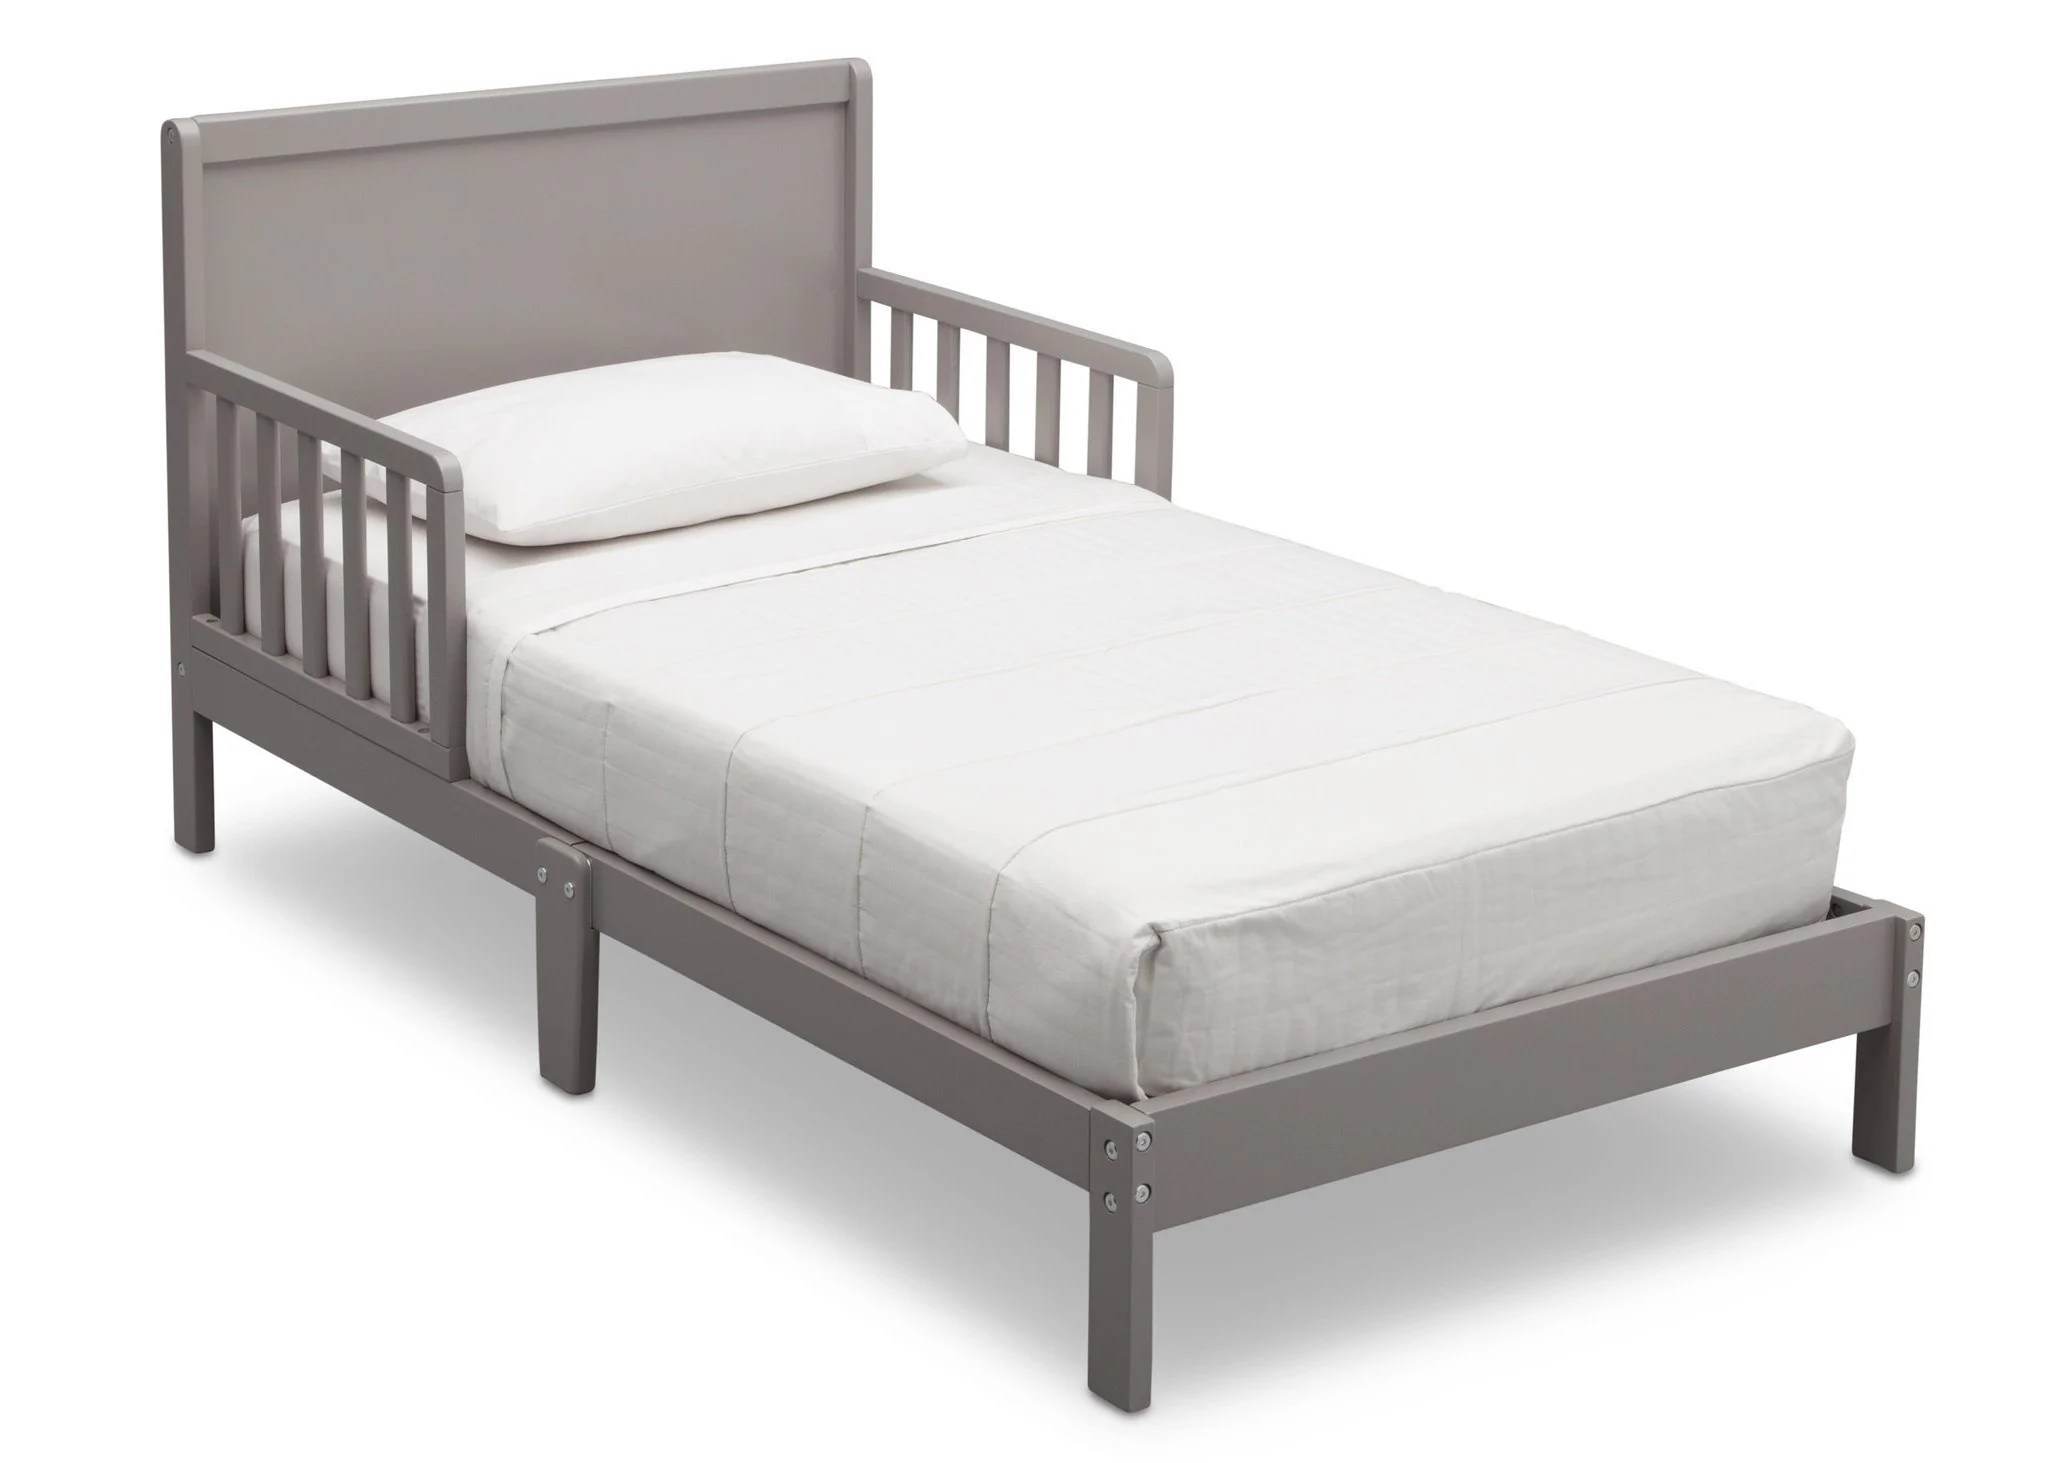 Fullsize Of Toddler Bed Mattress